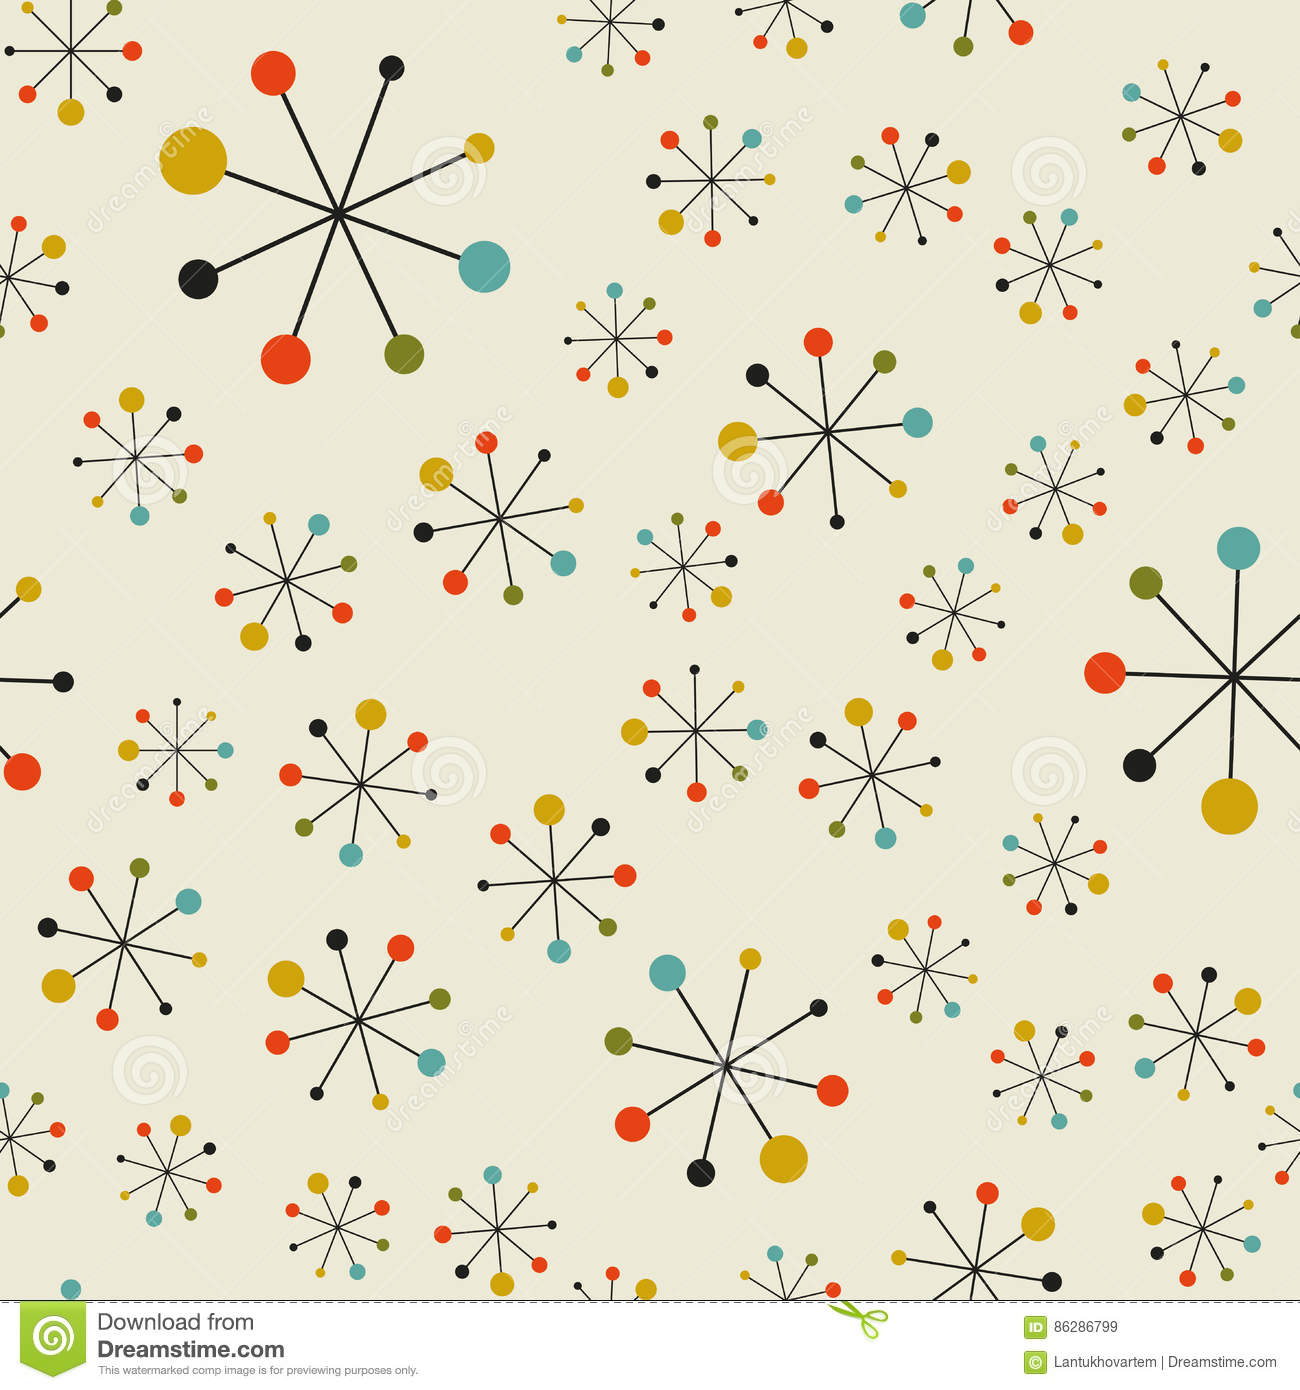 Abstract mid century space pattern